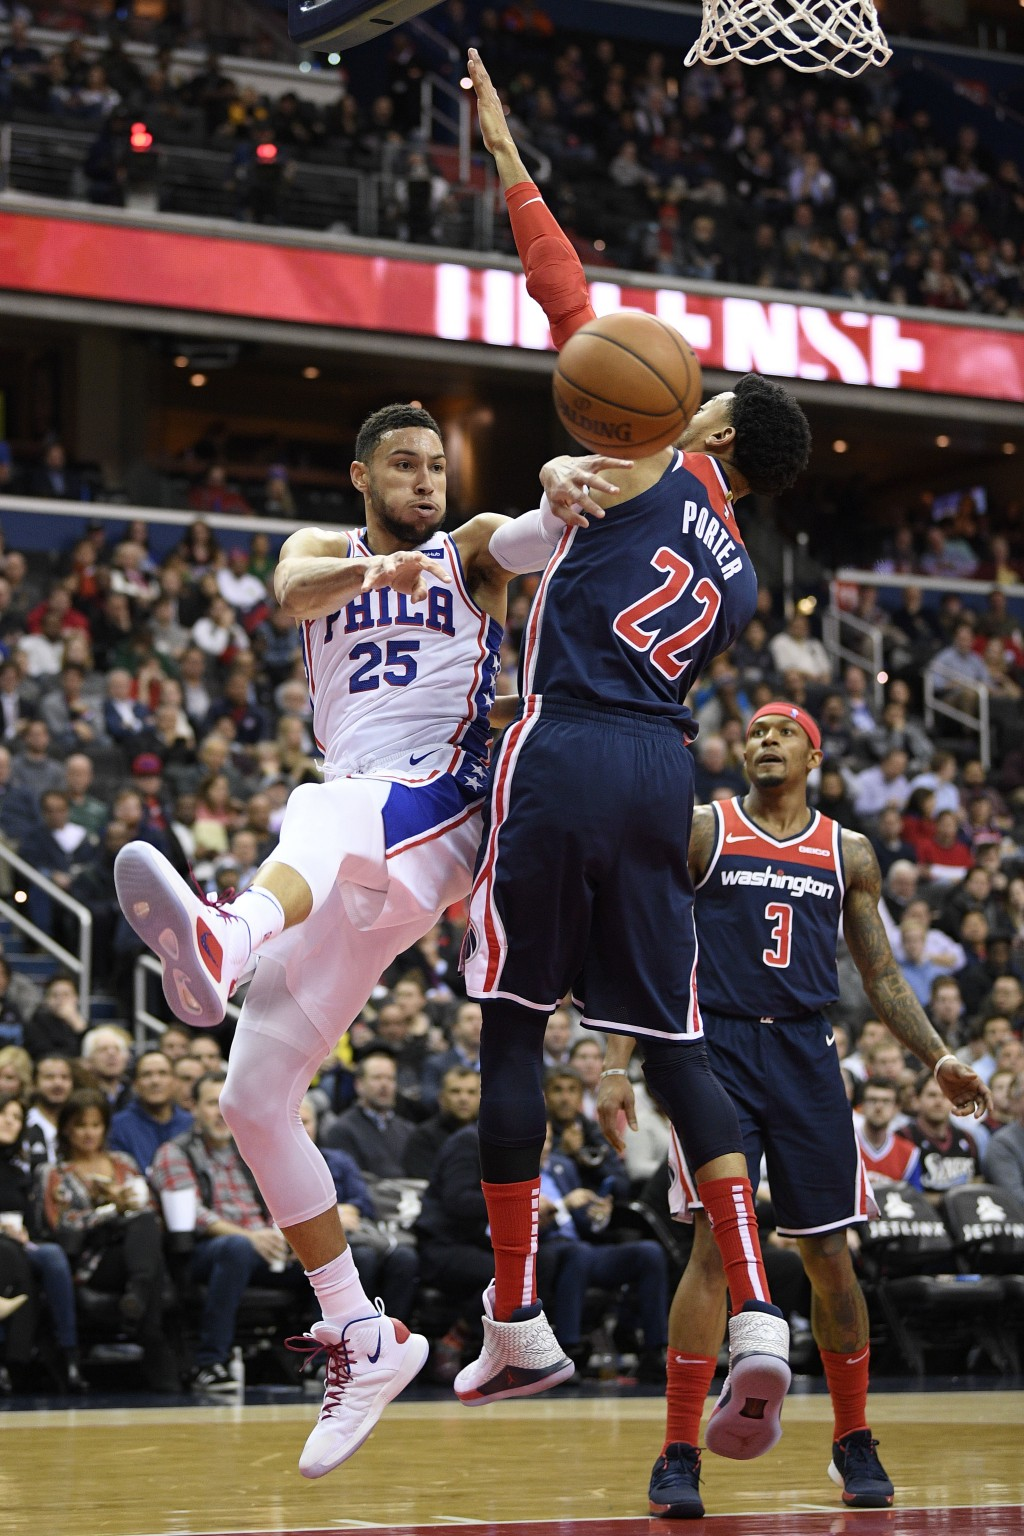 Philadelphia 76ers guard Ben Simmons (25) passes the ball against Washington Wizards forward Otto Porter Jr. (22) and guard Bradley Beal (3) during th...